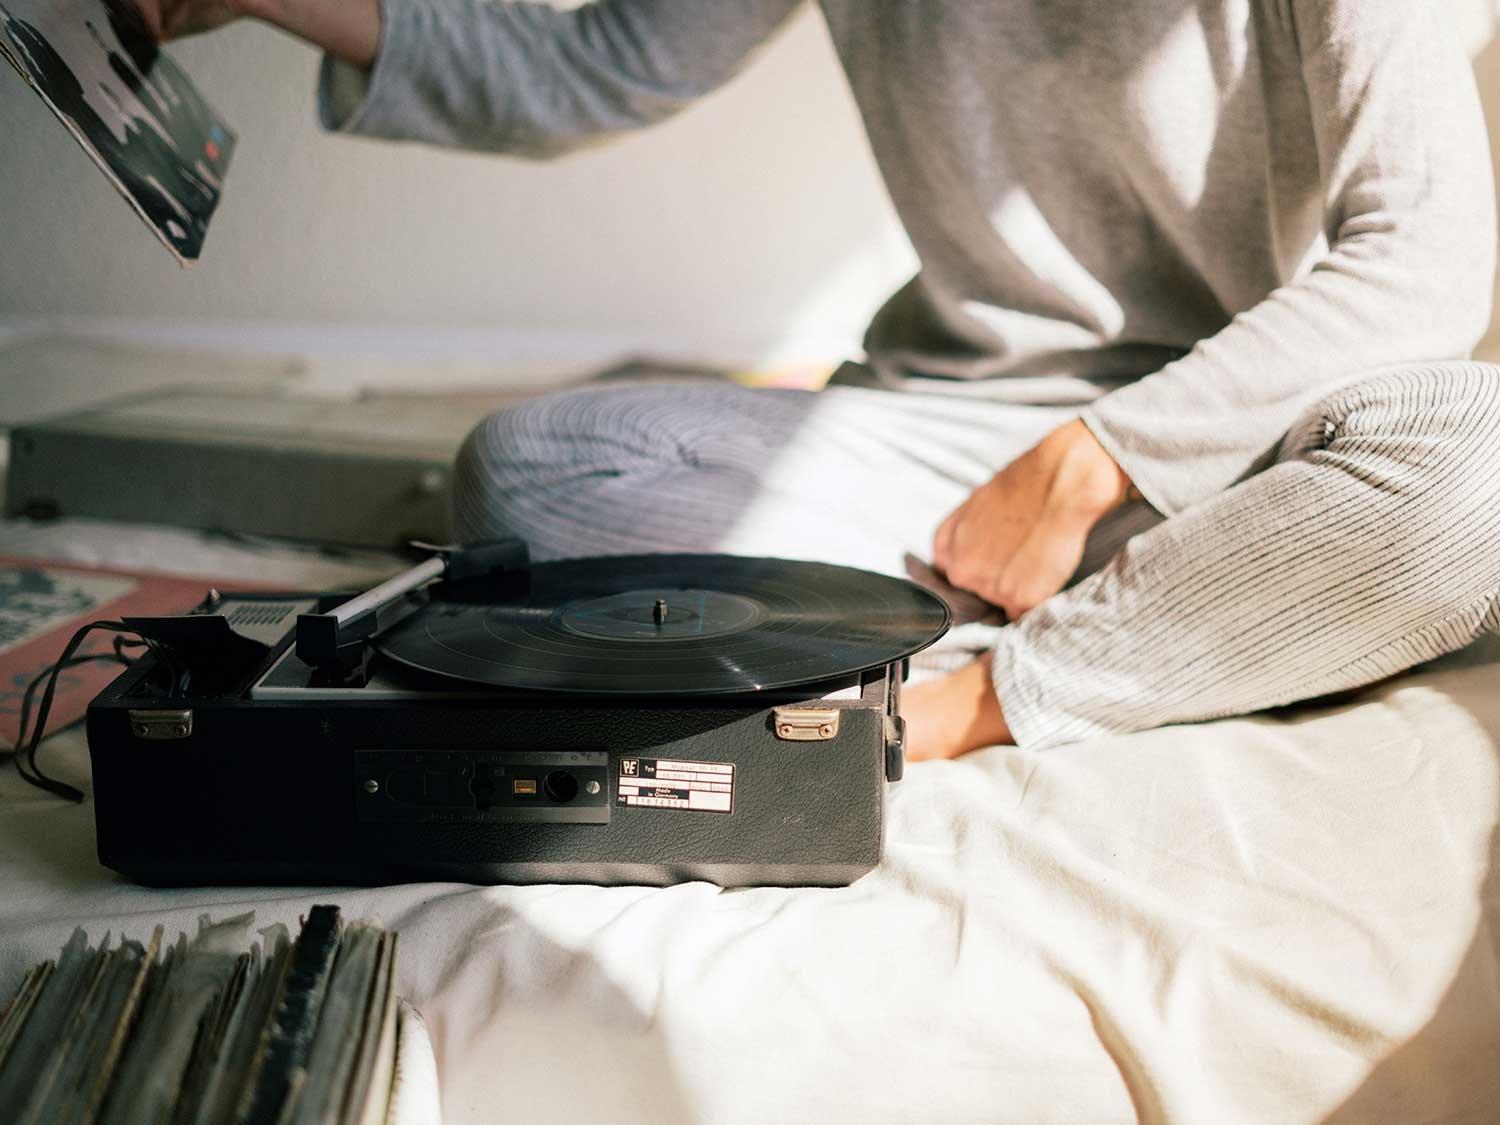 Using record player on bed.